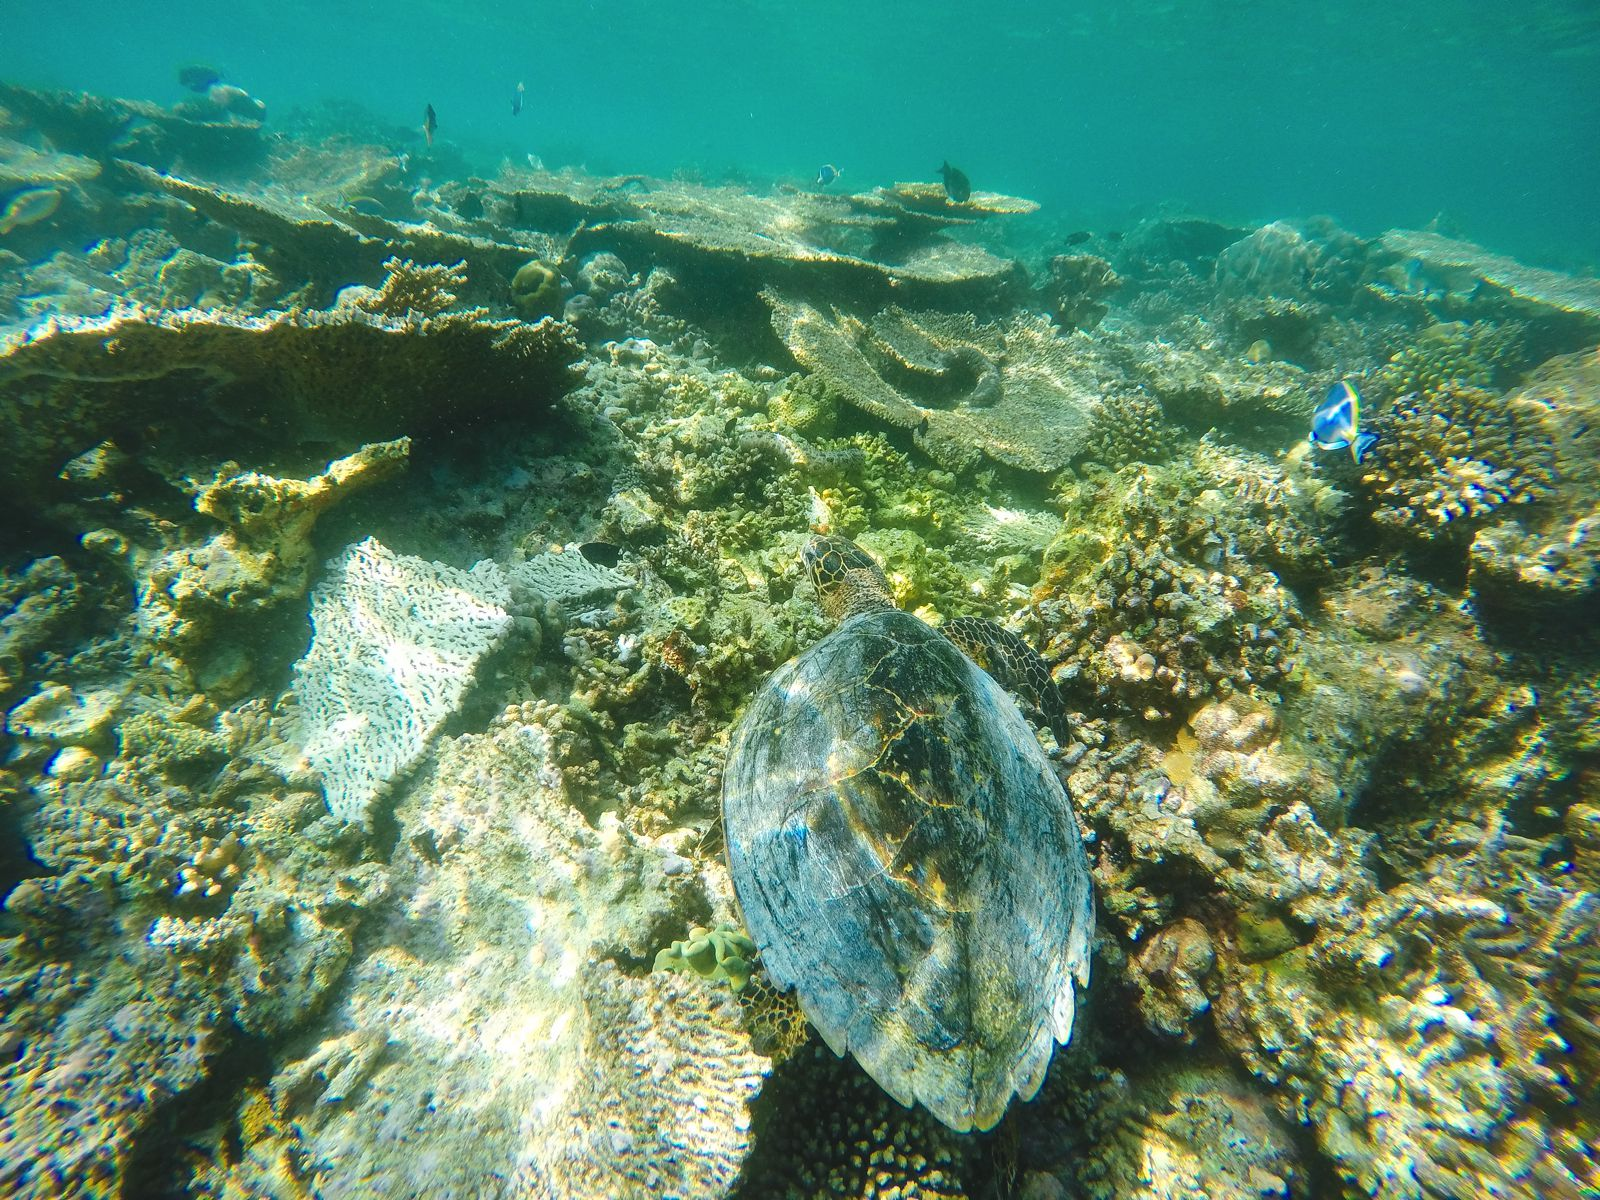 Swimming With Sharks, Turtles, Clownfish And Stingrays In The Maldives (13)